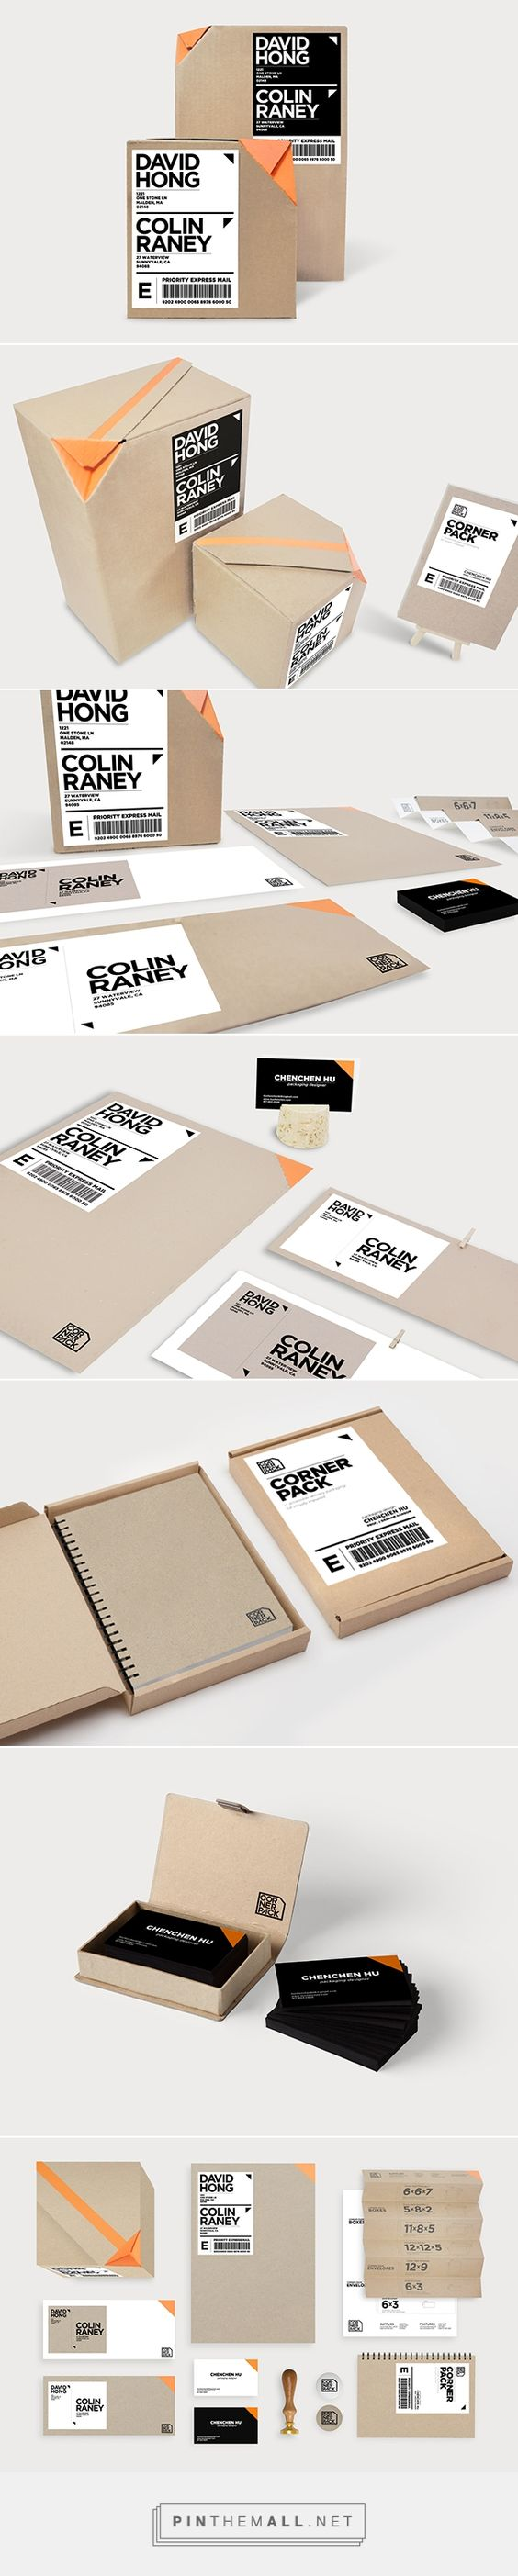 Corner Pack packaging system for the visually impaired by Chencen Hu. Please…